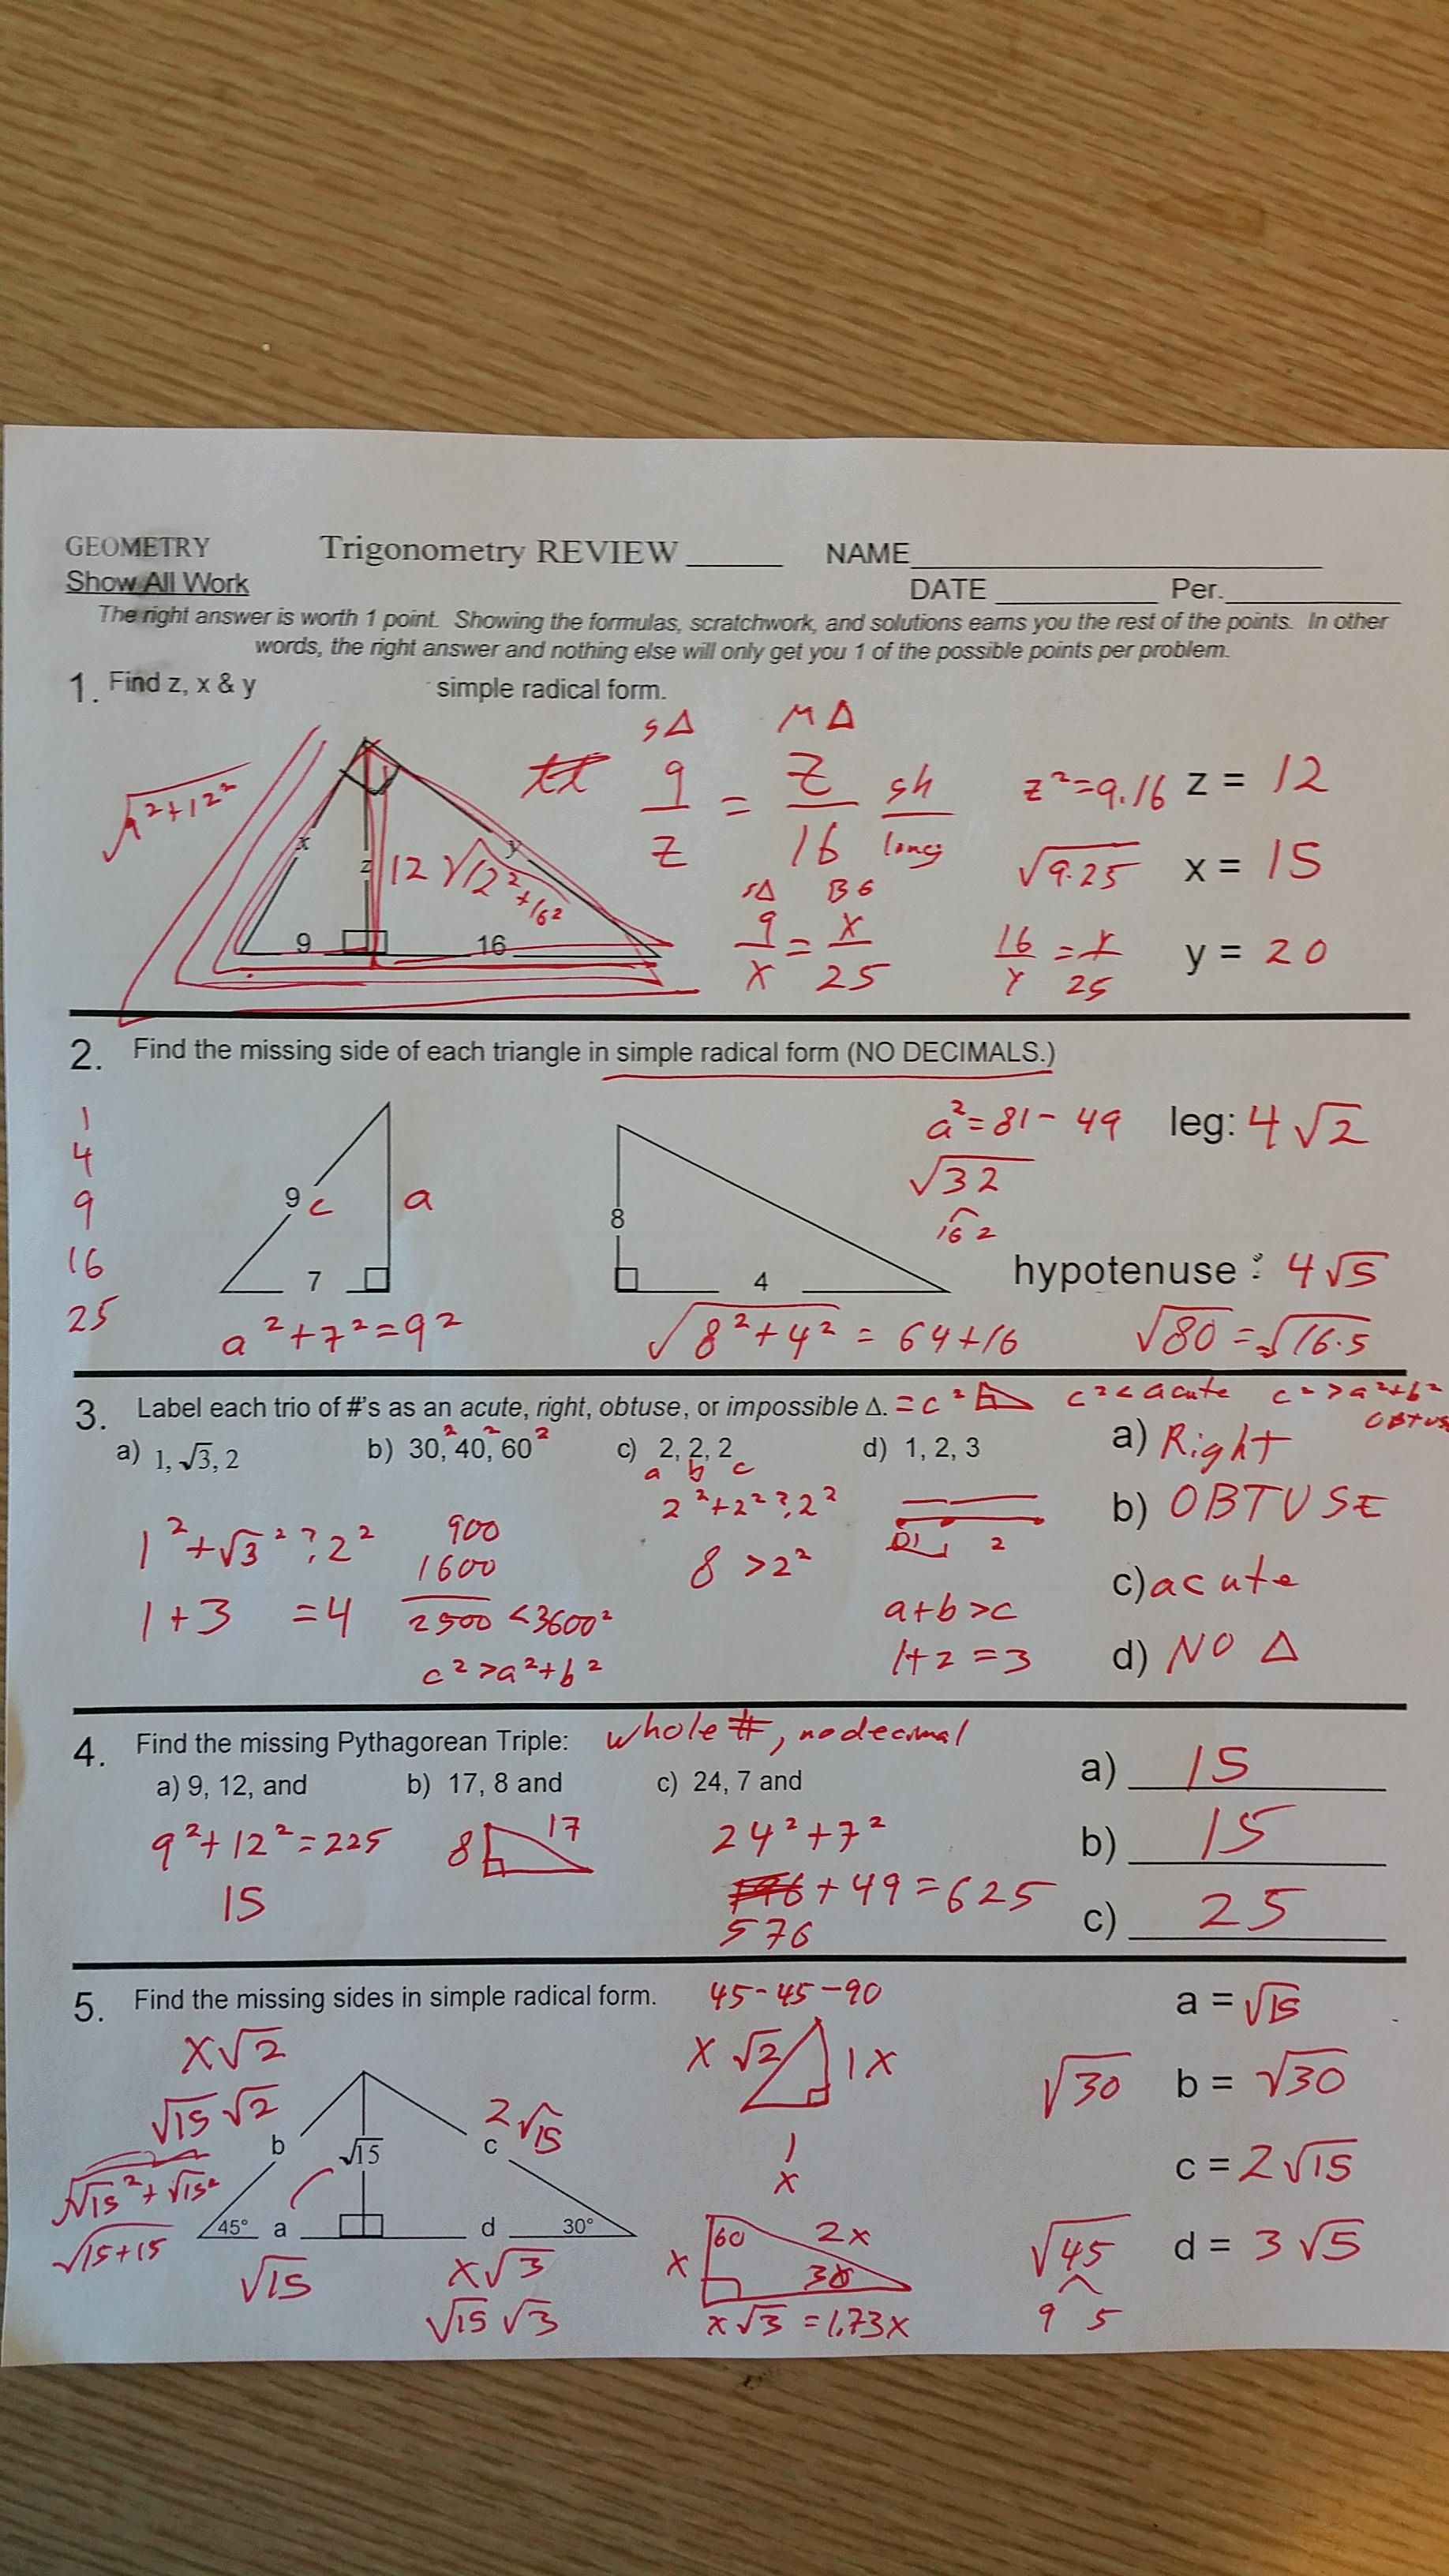 50 Triangle Inequality Theorem Worksheet In